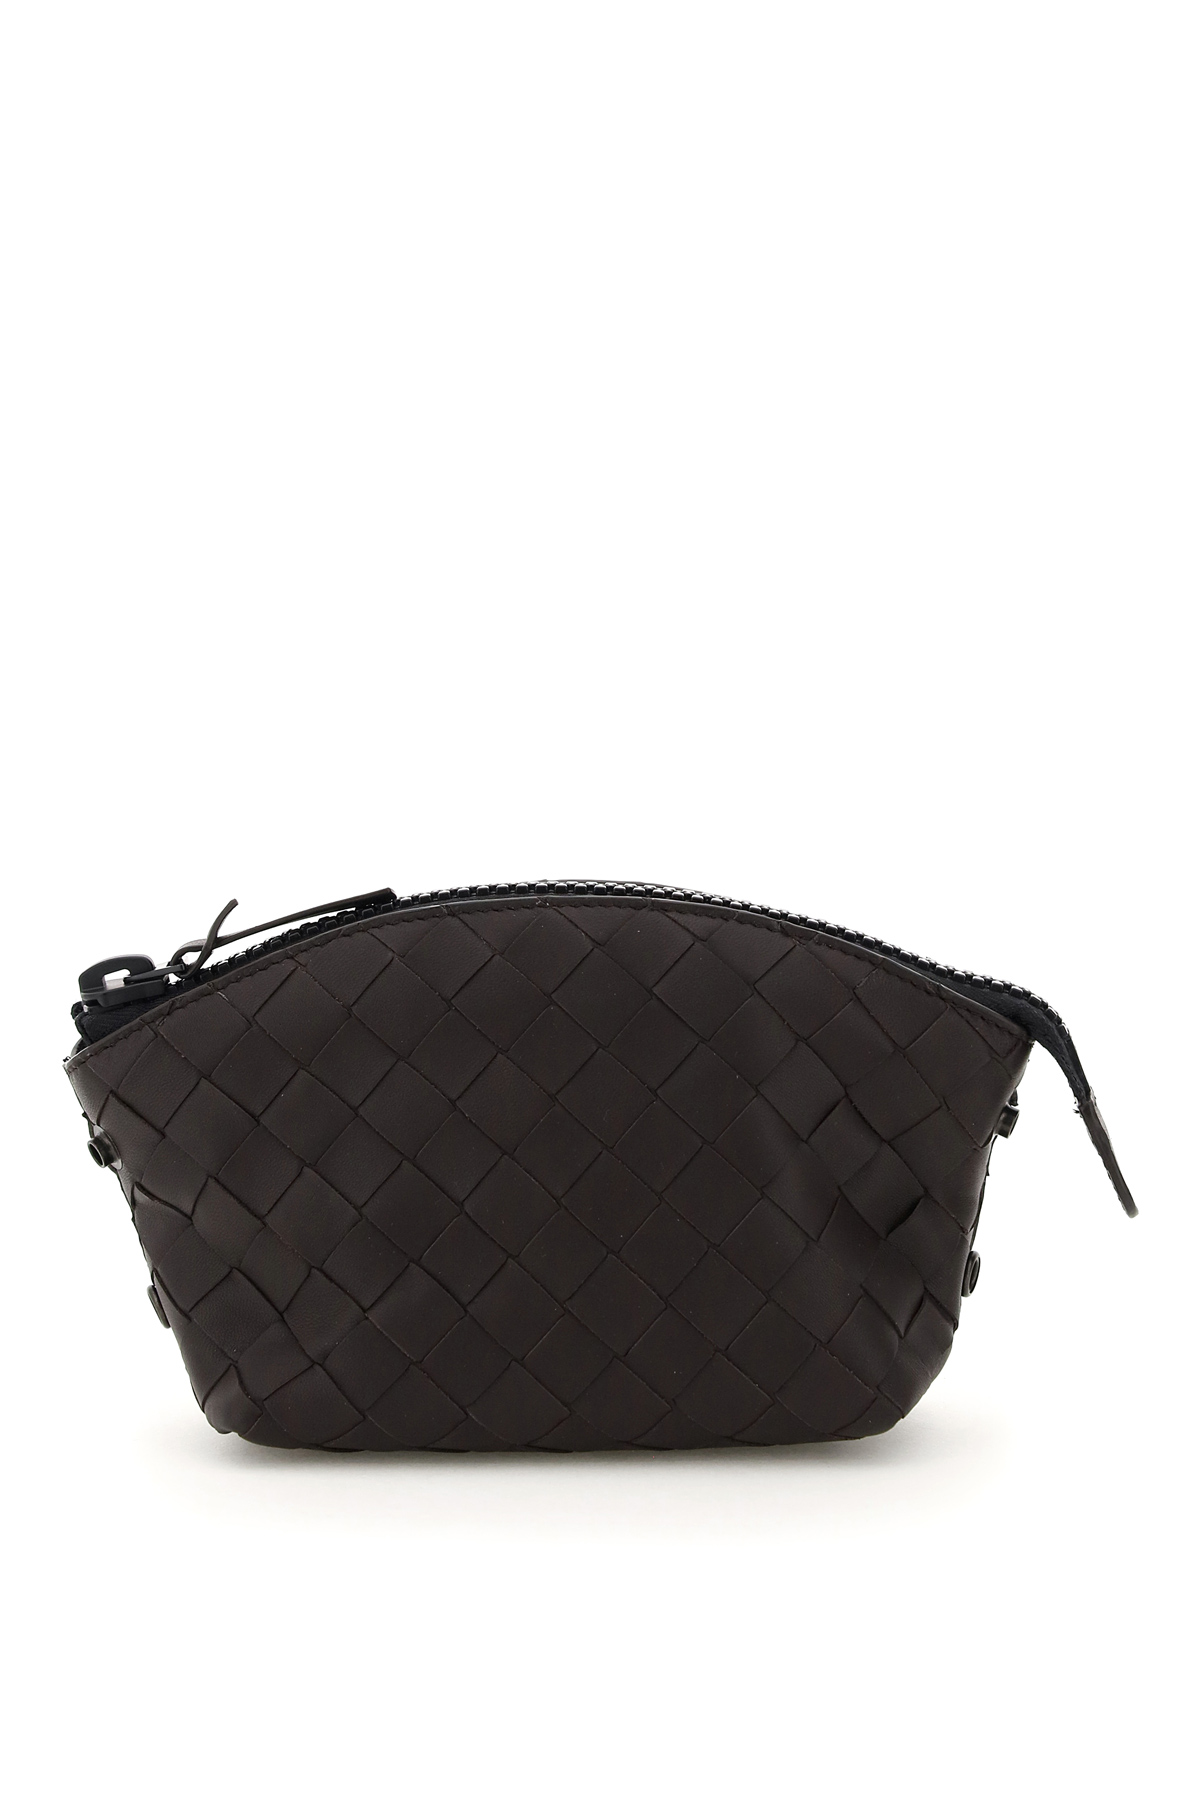 BOTTEGA VENETA PACKABLE TOTE BAG WITH POUCH OS Brown, Black Leather, Technical